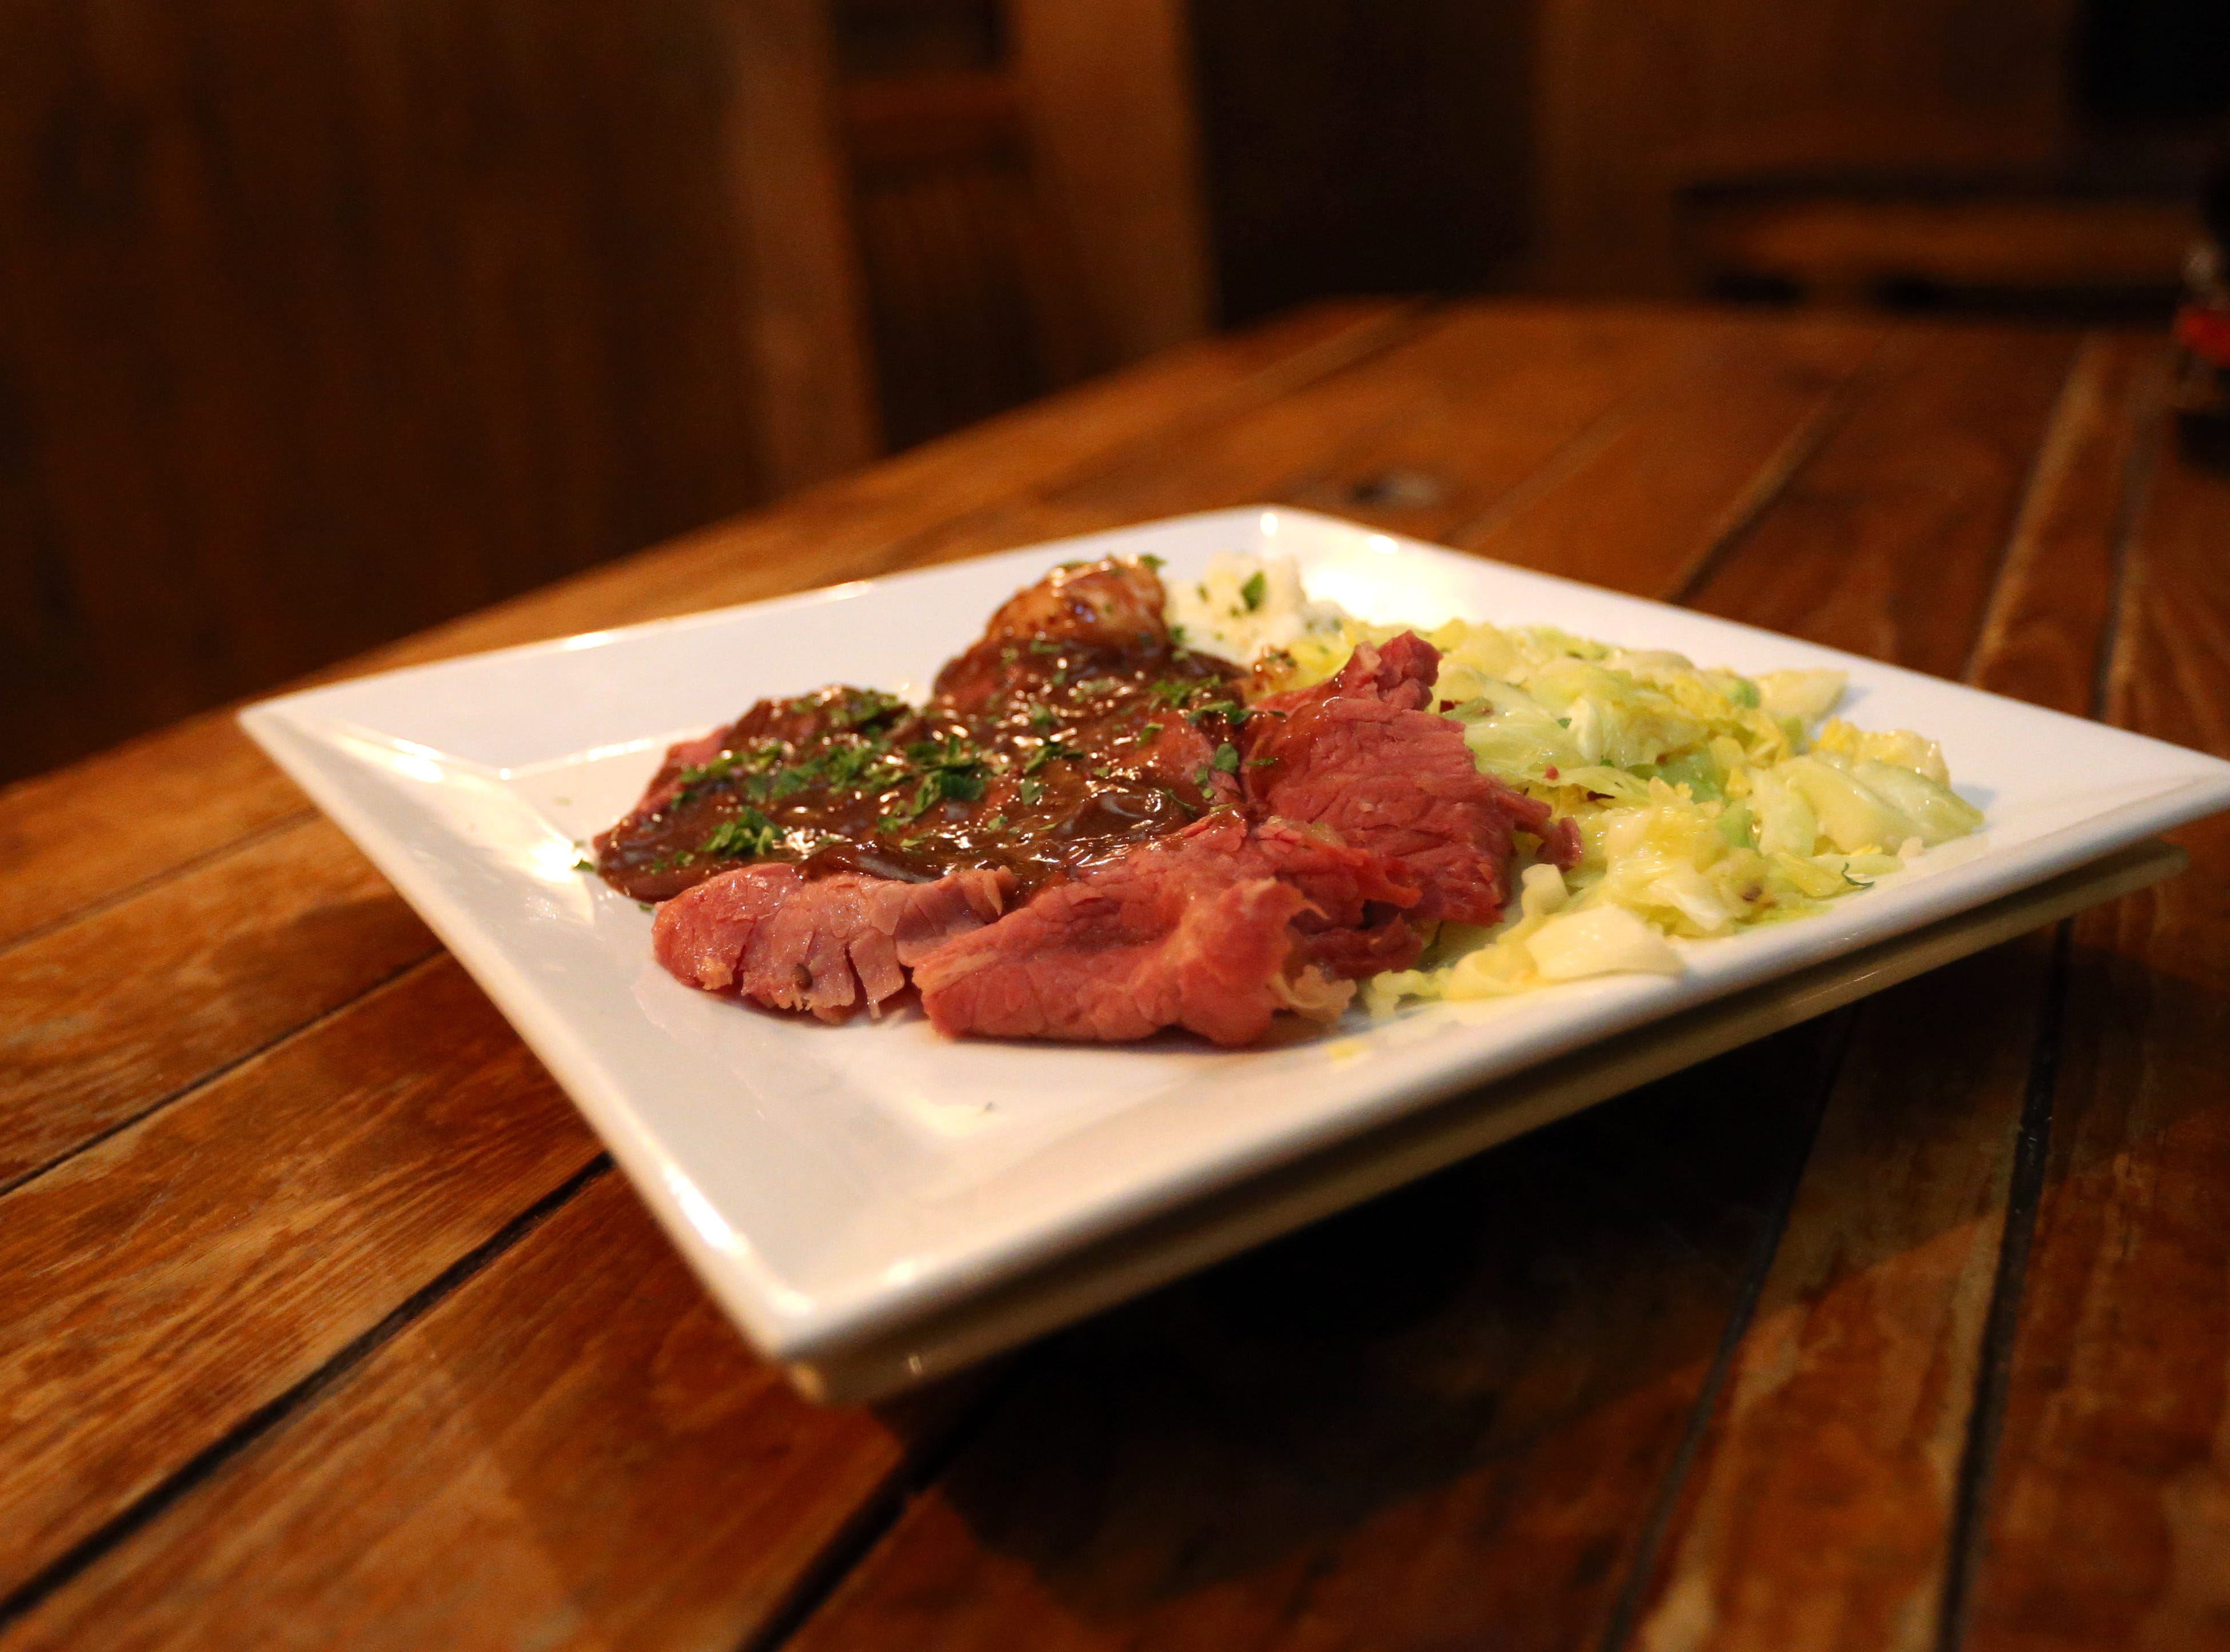 SKEPTICAL CHYMIST: Start with an authentic Irish breakfast ($14.49) served 8-9:45 a.m. After that, all day specials include lamb shepherd's pie ($11), bangers and mash ($10), and corned beef and cabbage ($11). Cover charge of $10 after 11 a.m. DETAILS: 15689 N. Hayden Road, Scottsdale. 480-609-8677, skepticalchymist.com.